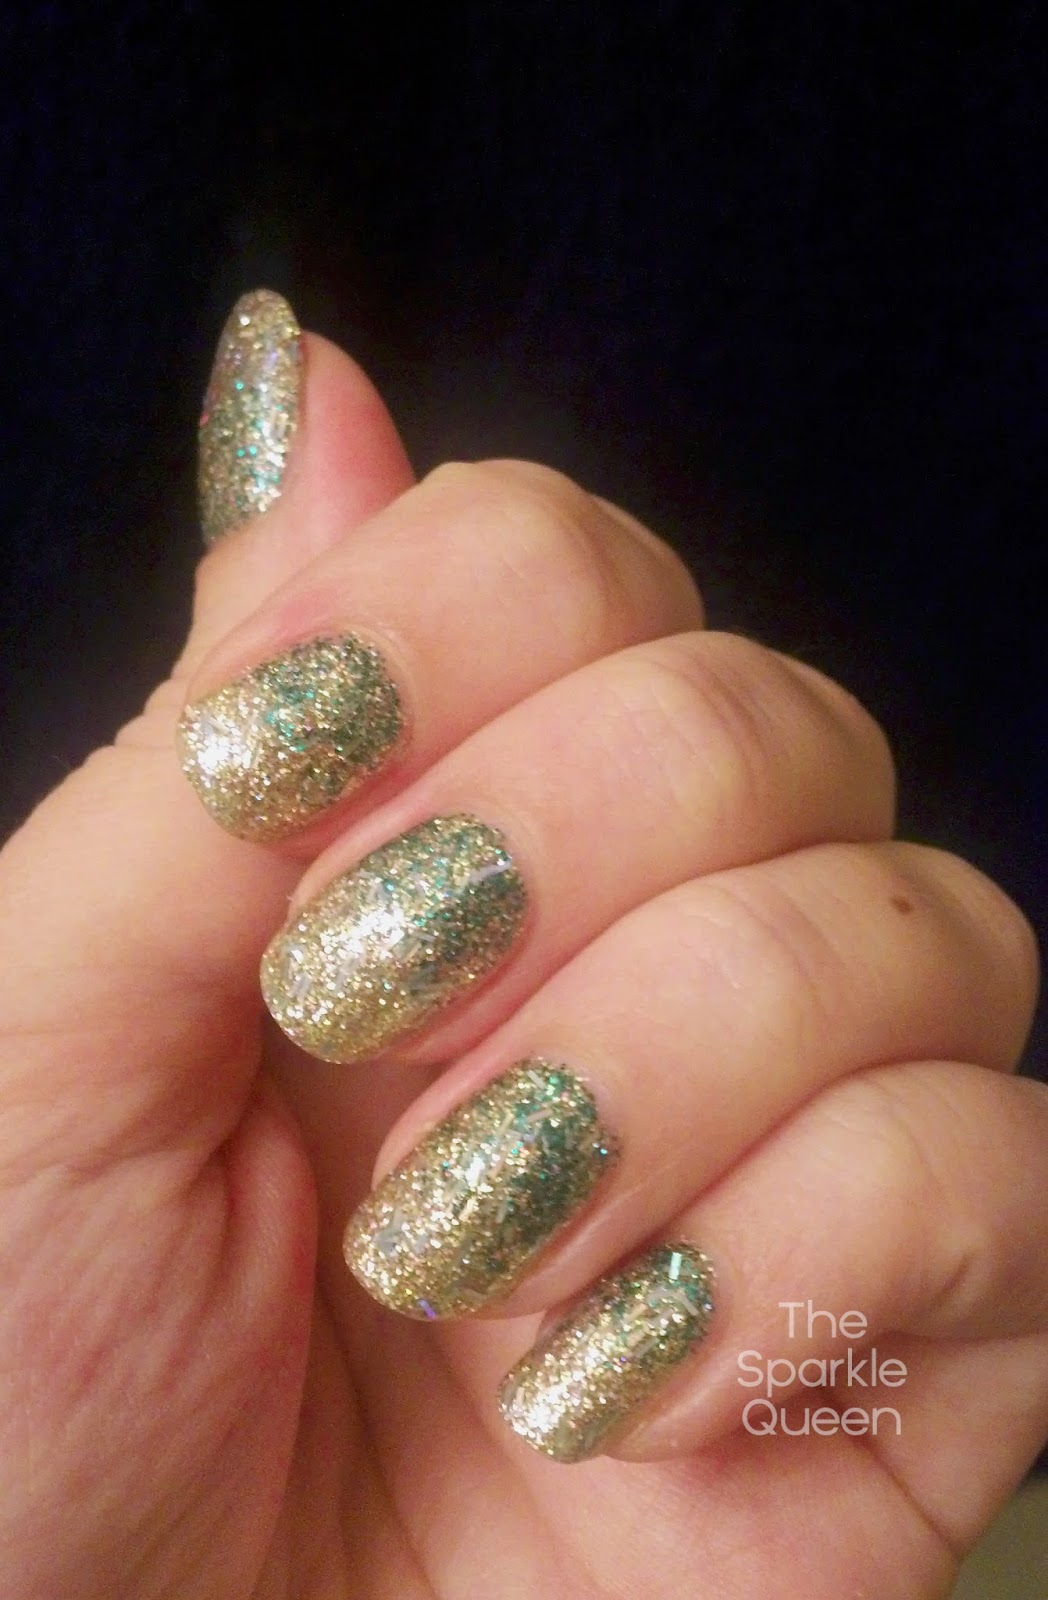 Christmas glitter gradient nail art a sparkly life for me a trio of polishes makes up this look though only one has a name i used a green glitter actually labeled green glitter no clue where i prinsesfo Gallery